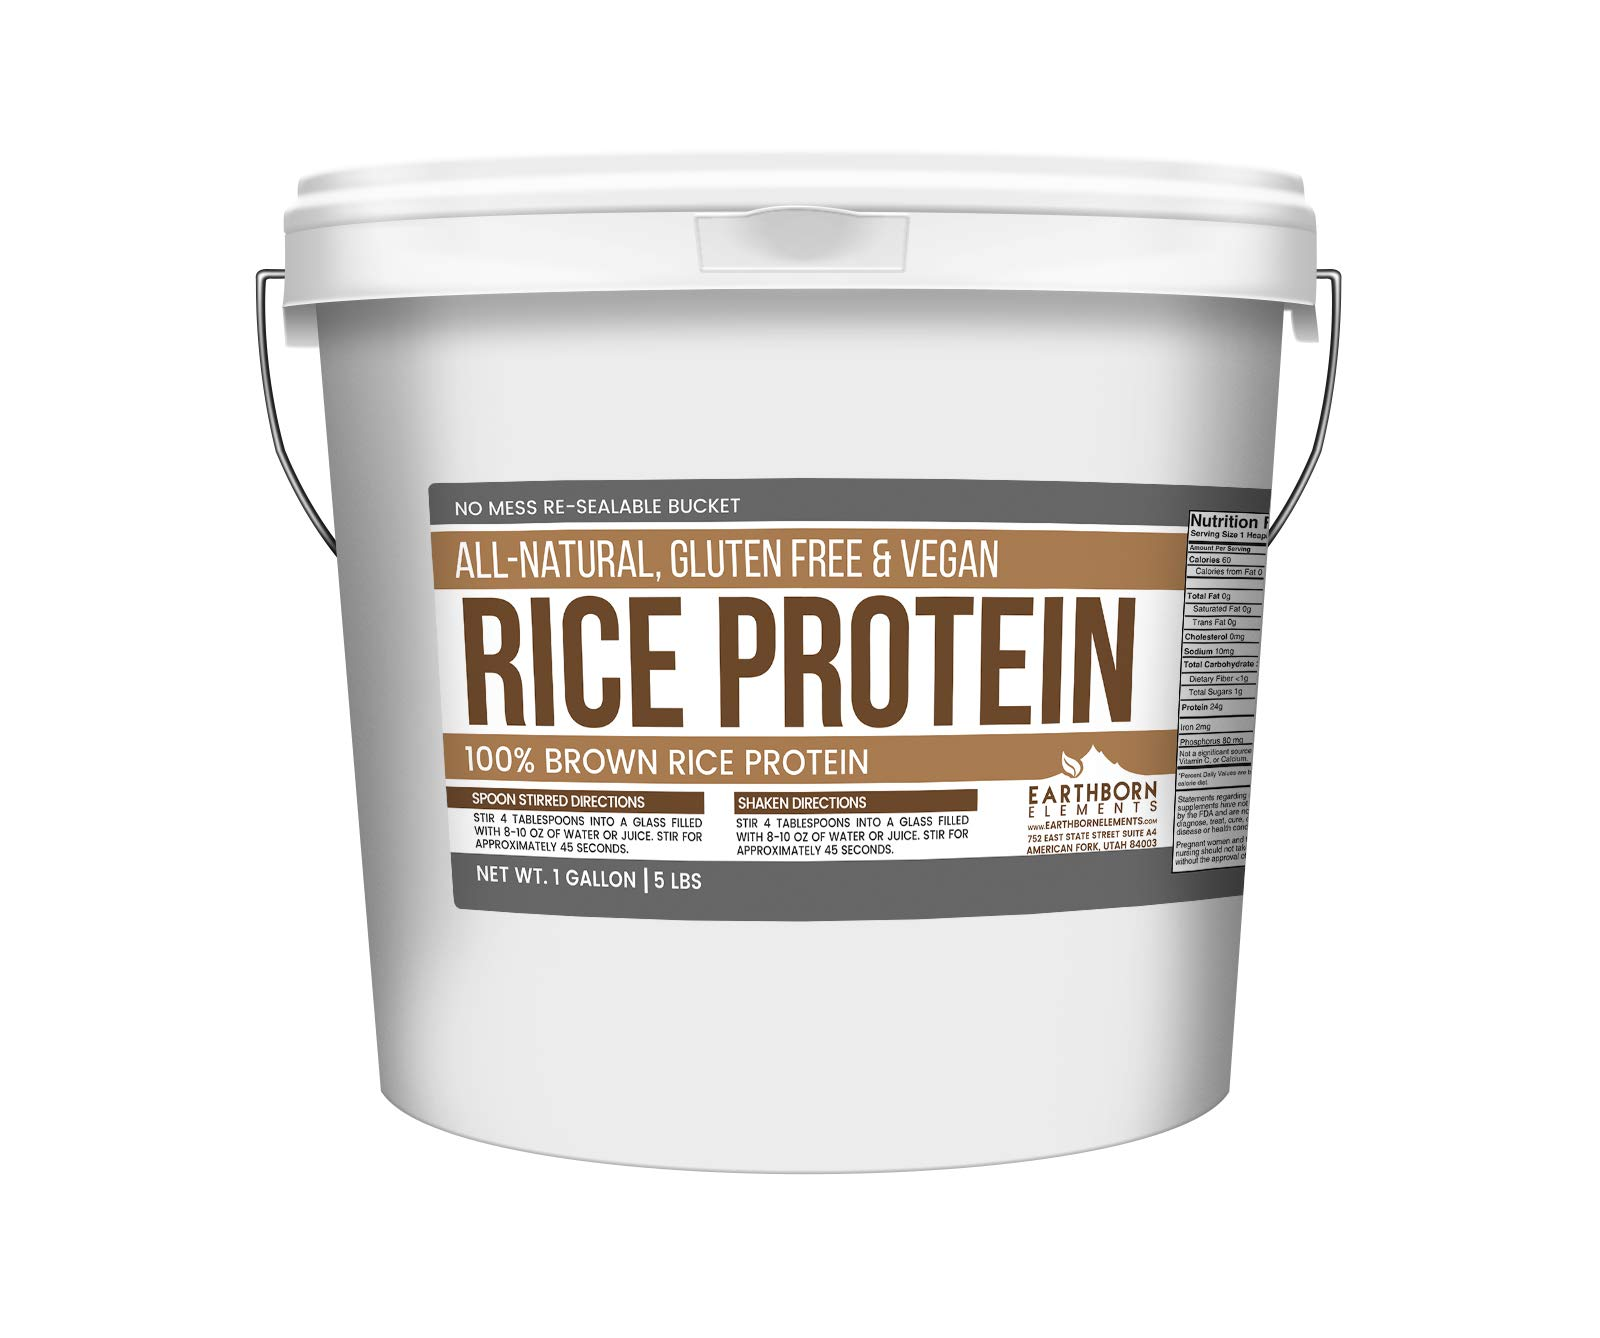 Rice Protein Powder, 1 Gallon Bucket (5 LBS) by Earthborn Elements, Sustainably Sourced from Sprouted Brown Rice, Vegan & Gluten-Free, Post-Workout Recovery